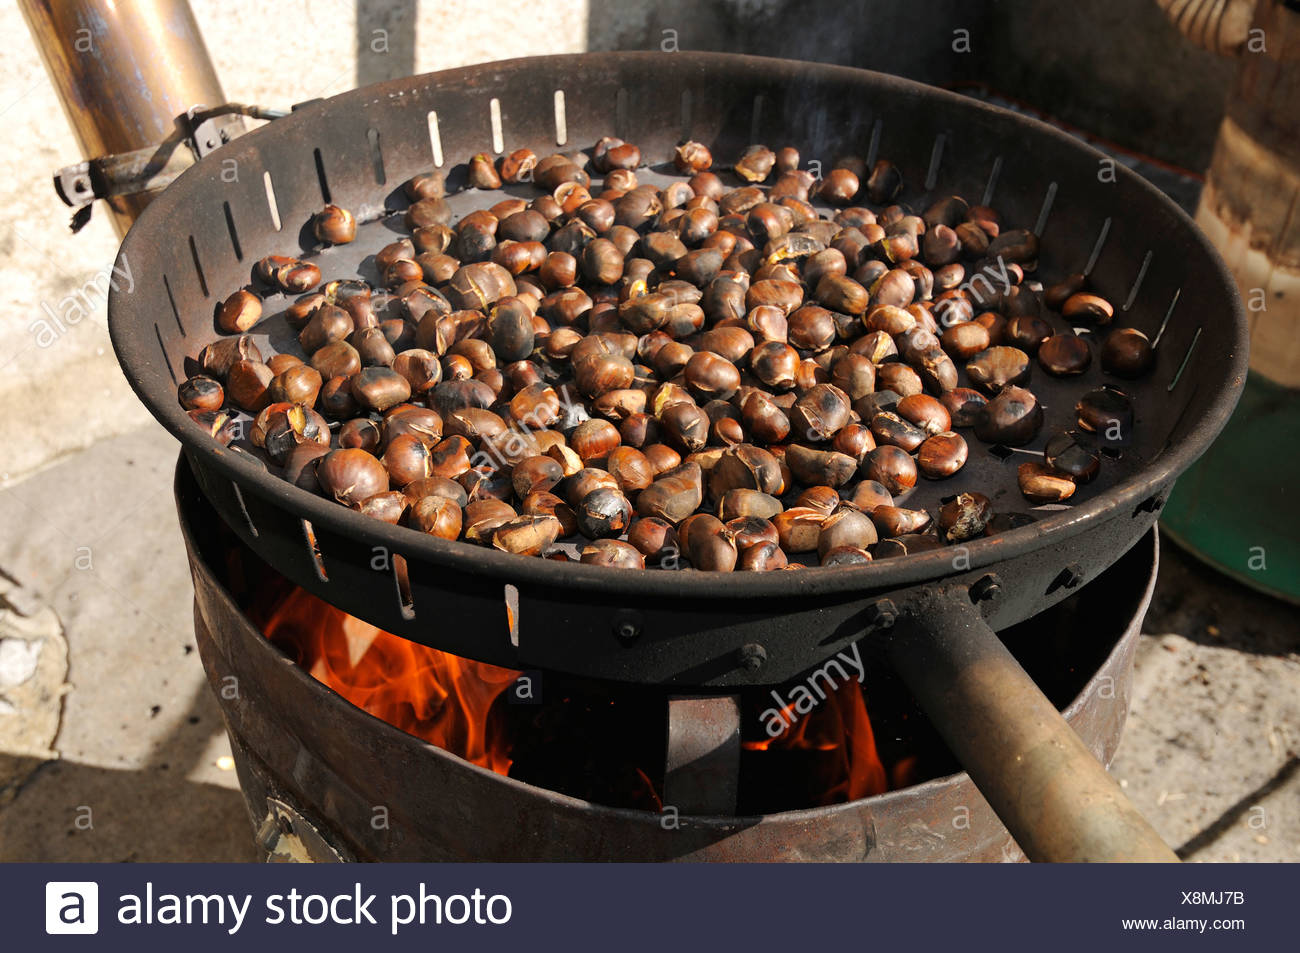 Chataigne A La Cheminée Chestnuts Fire Photos And Chestnuts Fire Images Alamy